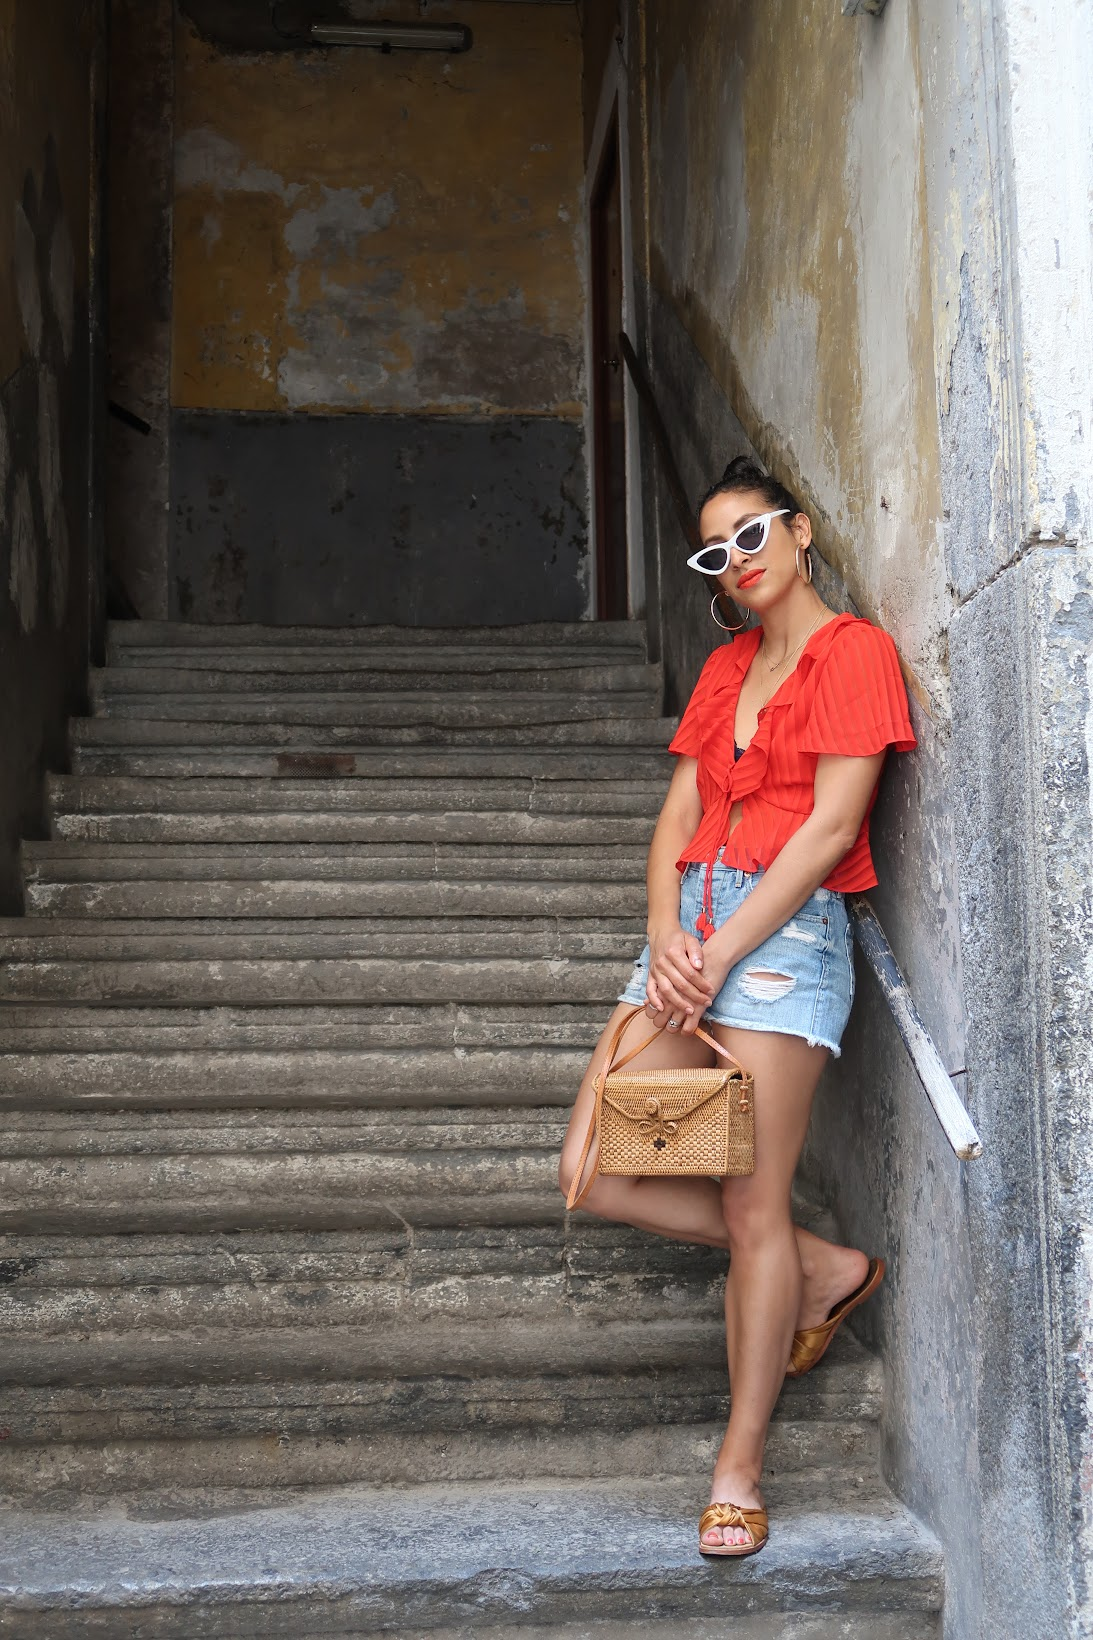 Napoli Italia, Naples italy, what to wear in Naples, Italy, Finders Keepers the label Arcadia top, gold hoops, Bali bamboo rectangle bag, One Teaspoon shorts